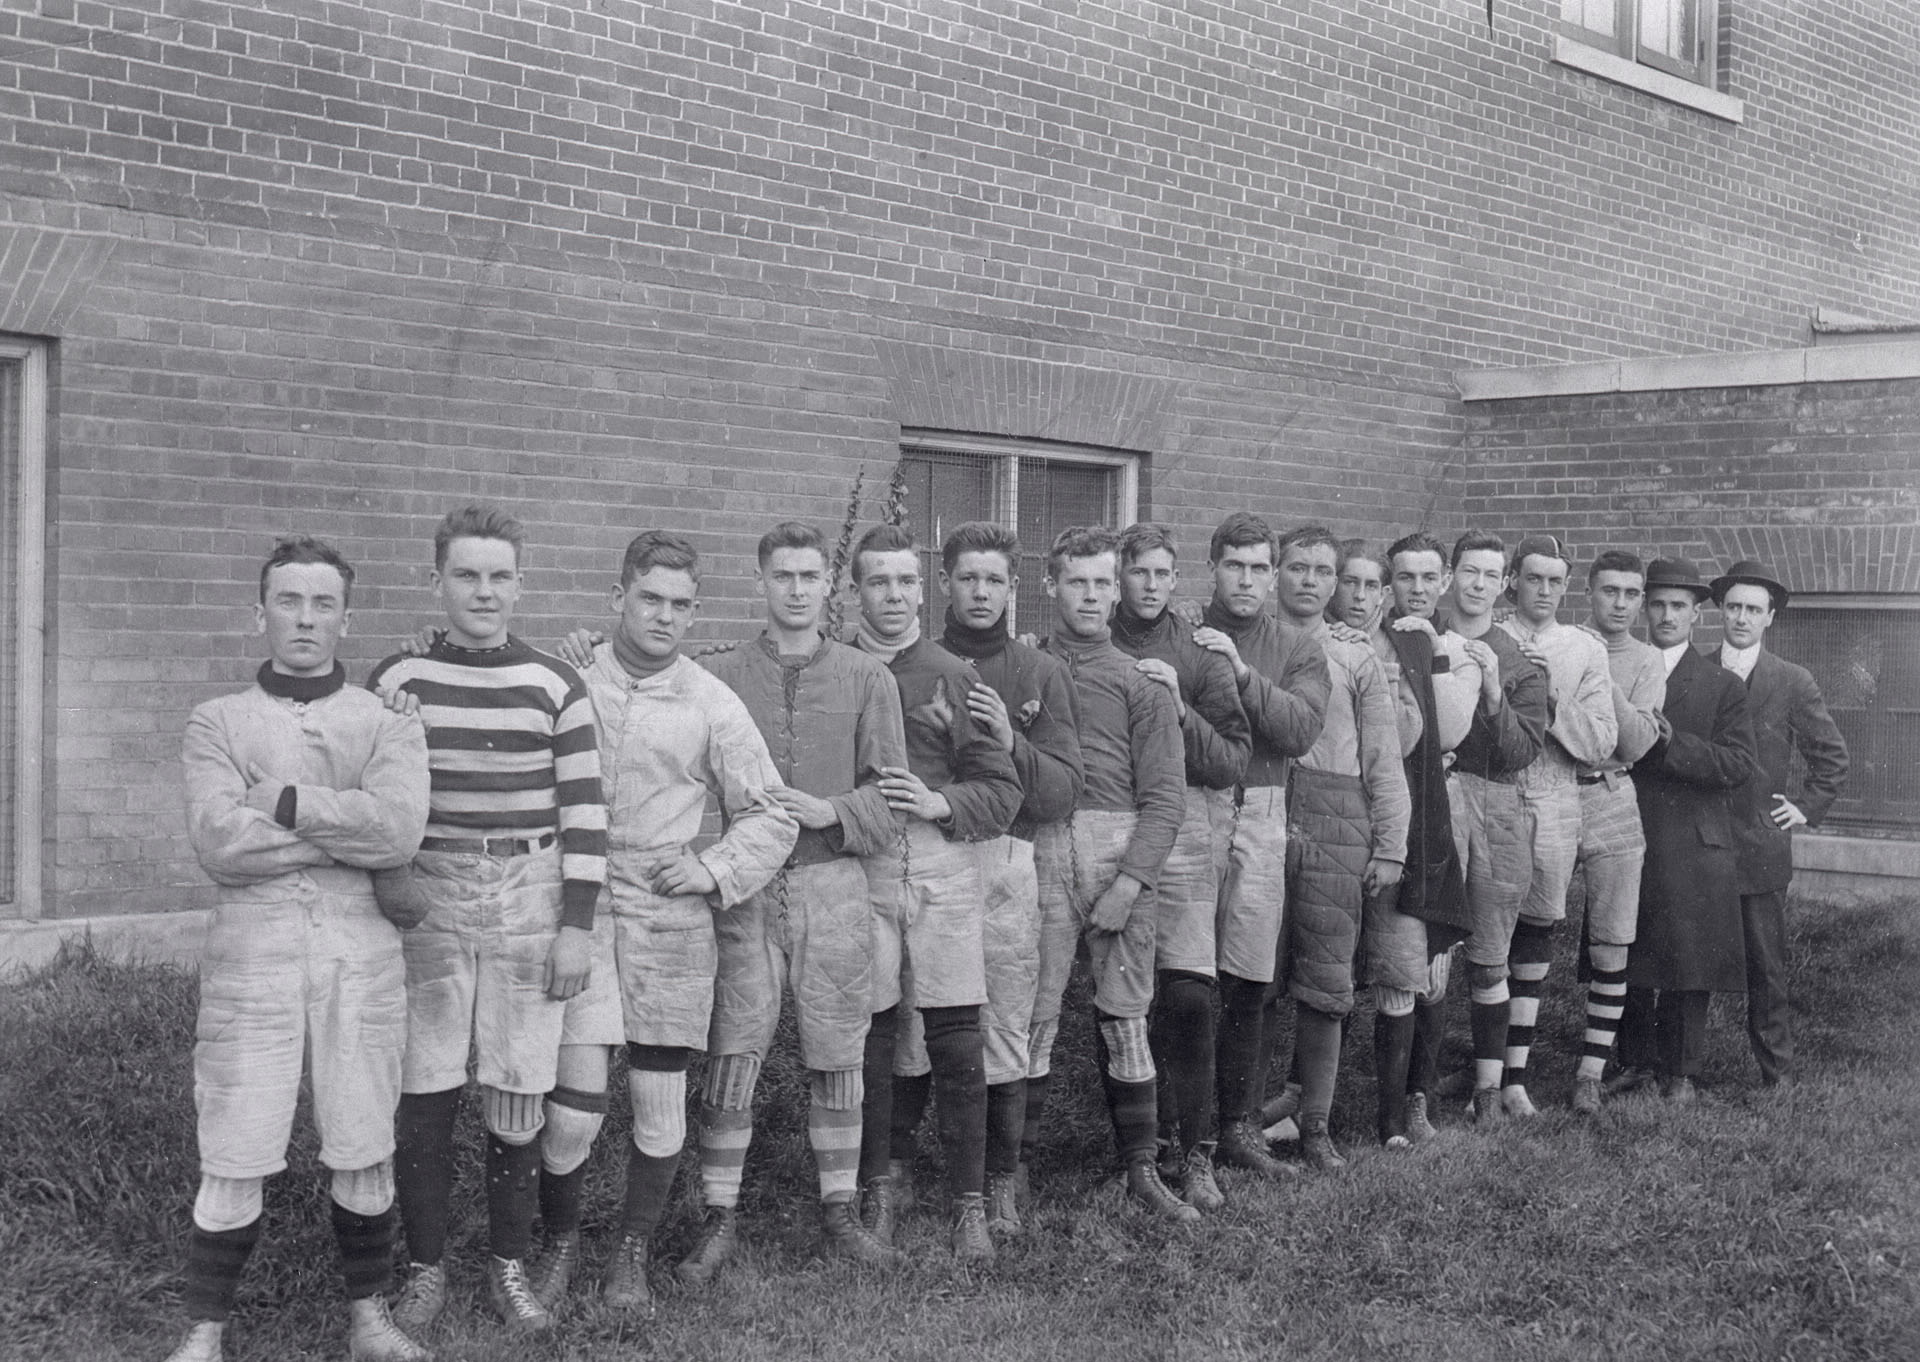 Young Men's Christian Association, Broadview Ave., Rugby team., 1915